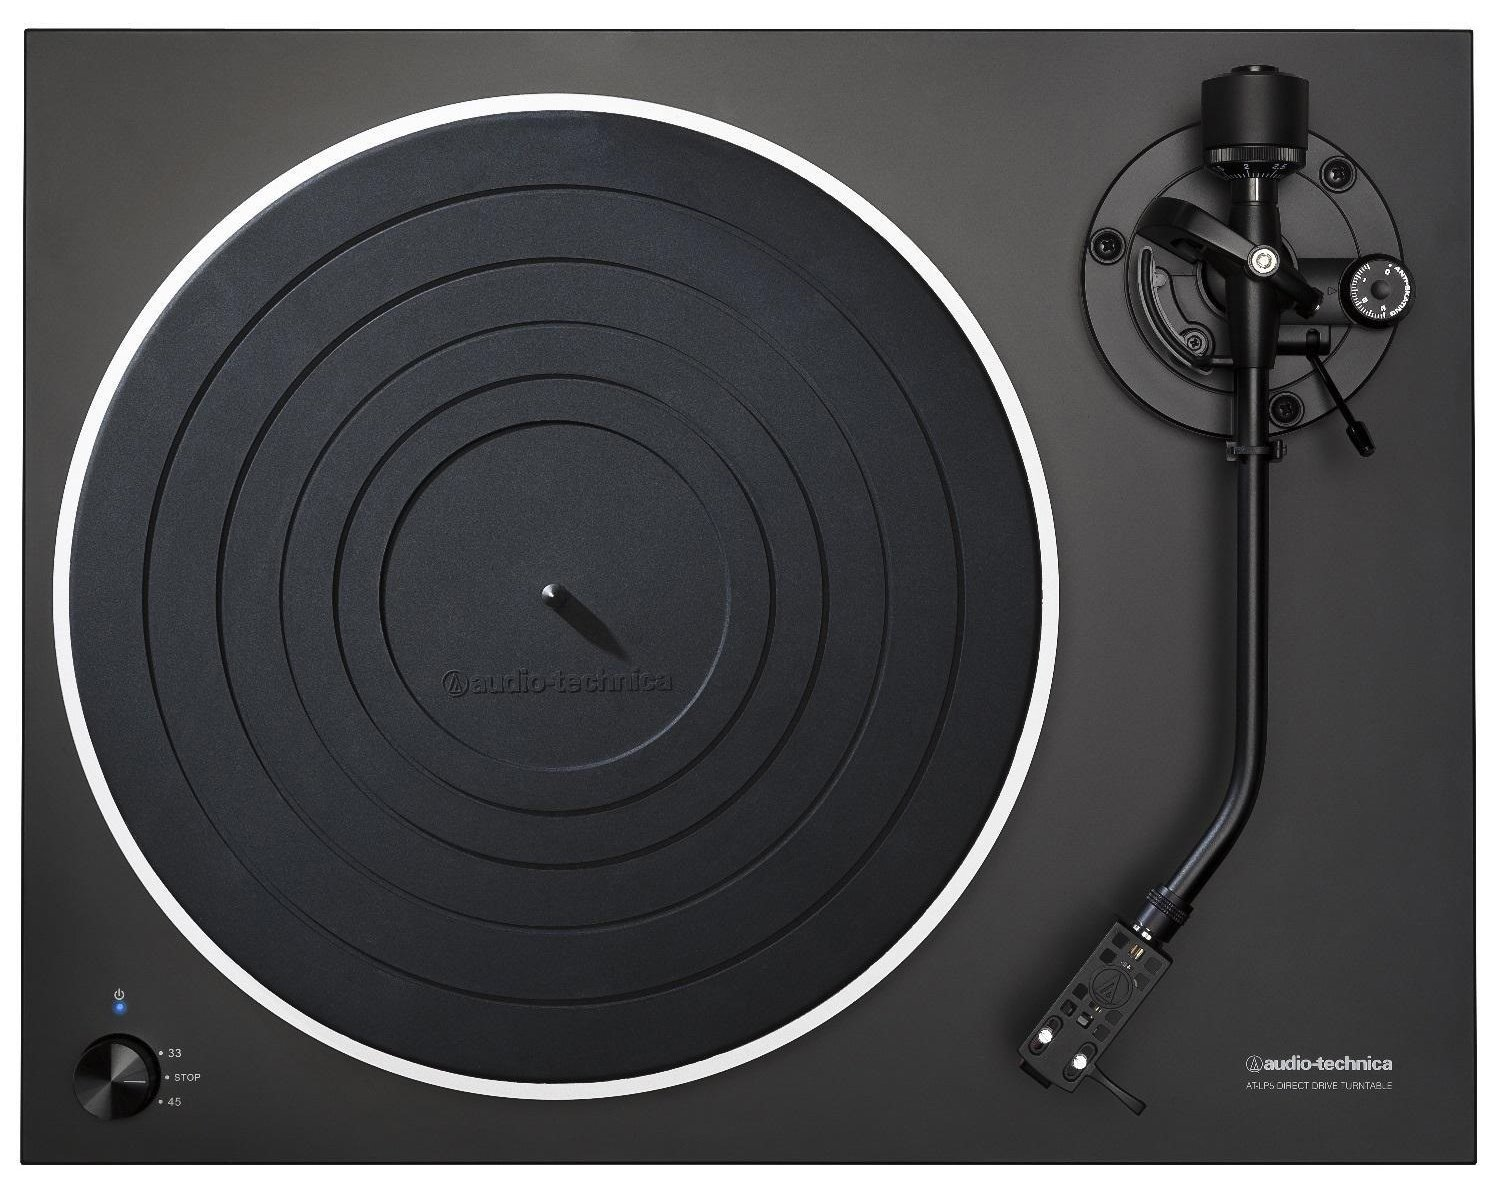 Best Turntables 12222 The Best Record Players For Any Budget